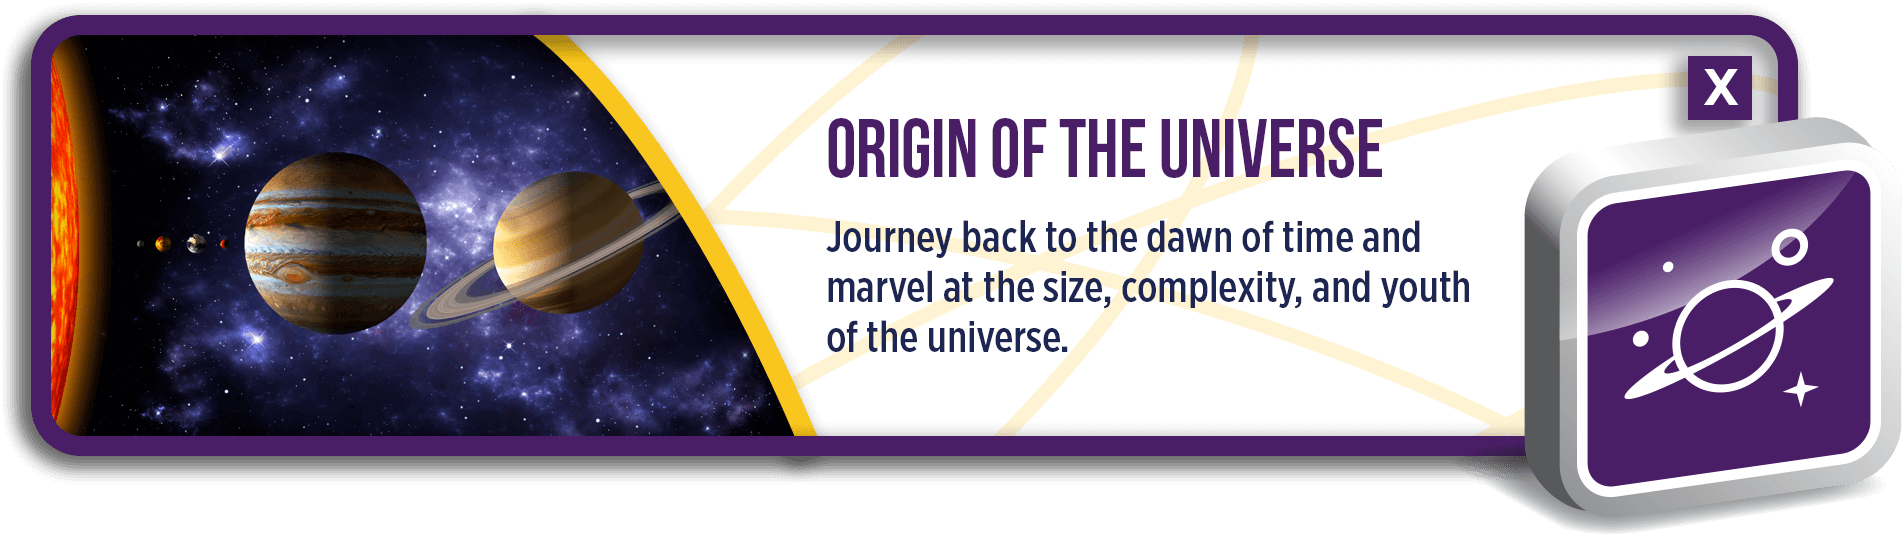 Origin of the Universe: Journey back to the dawn of time and marvel at the size, complexity, and youth of the universe.